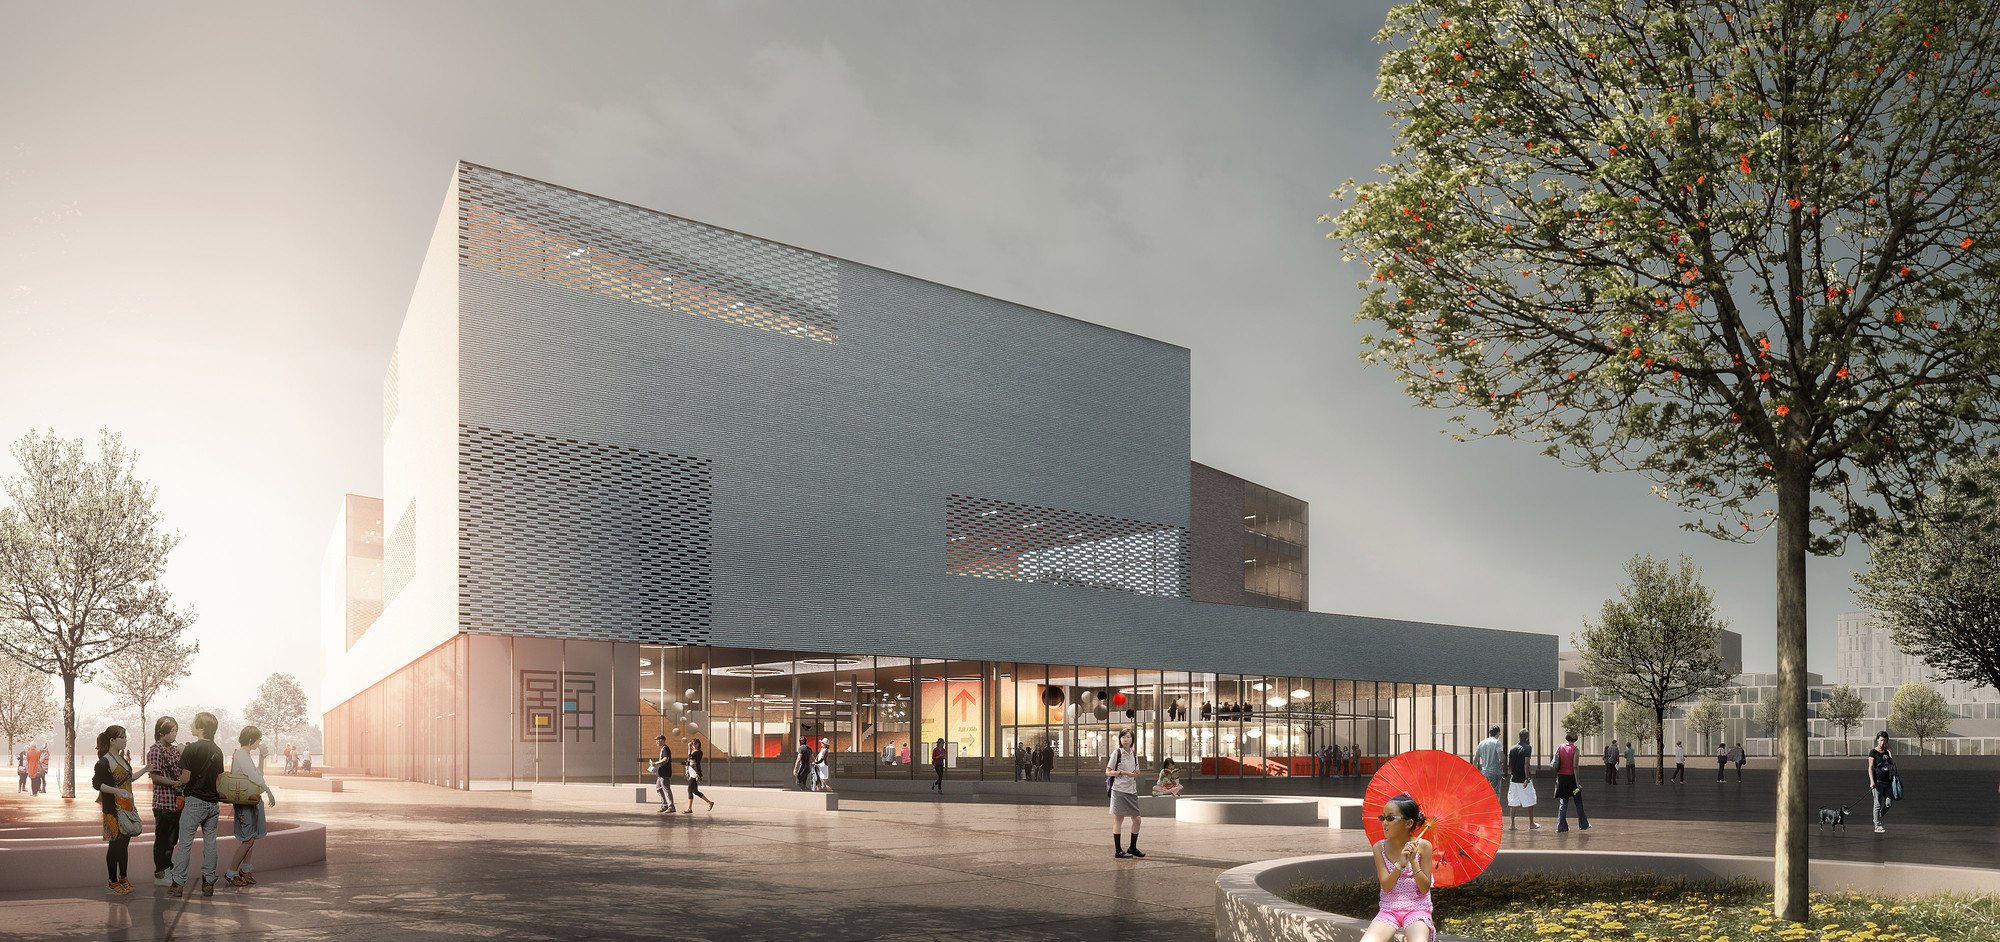 schmidt hammer lassen Wins Competition to Design Ningbo's New Central Library, © schmidt hammer lassen architects